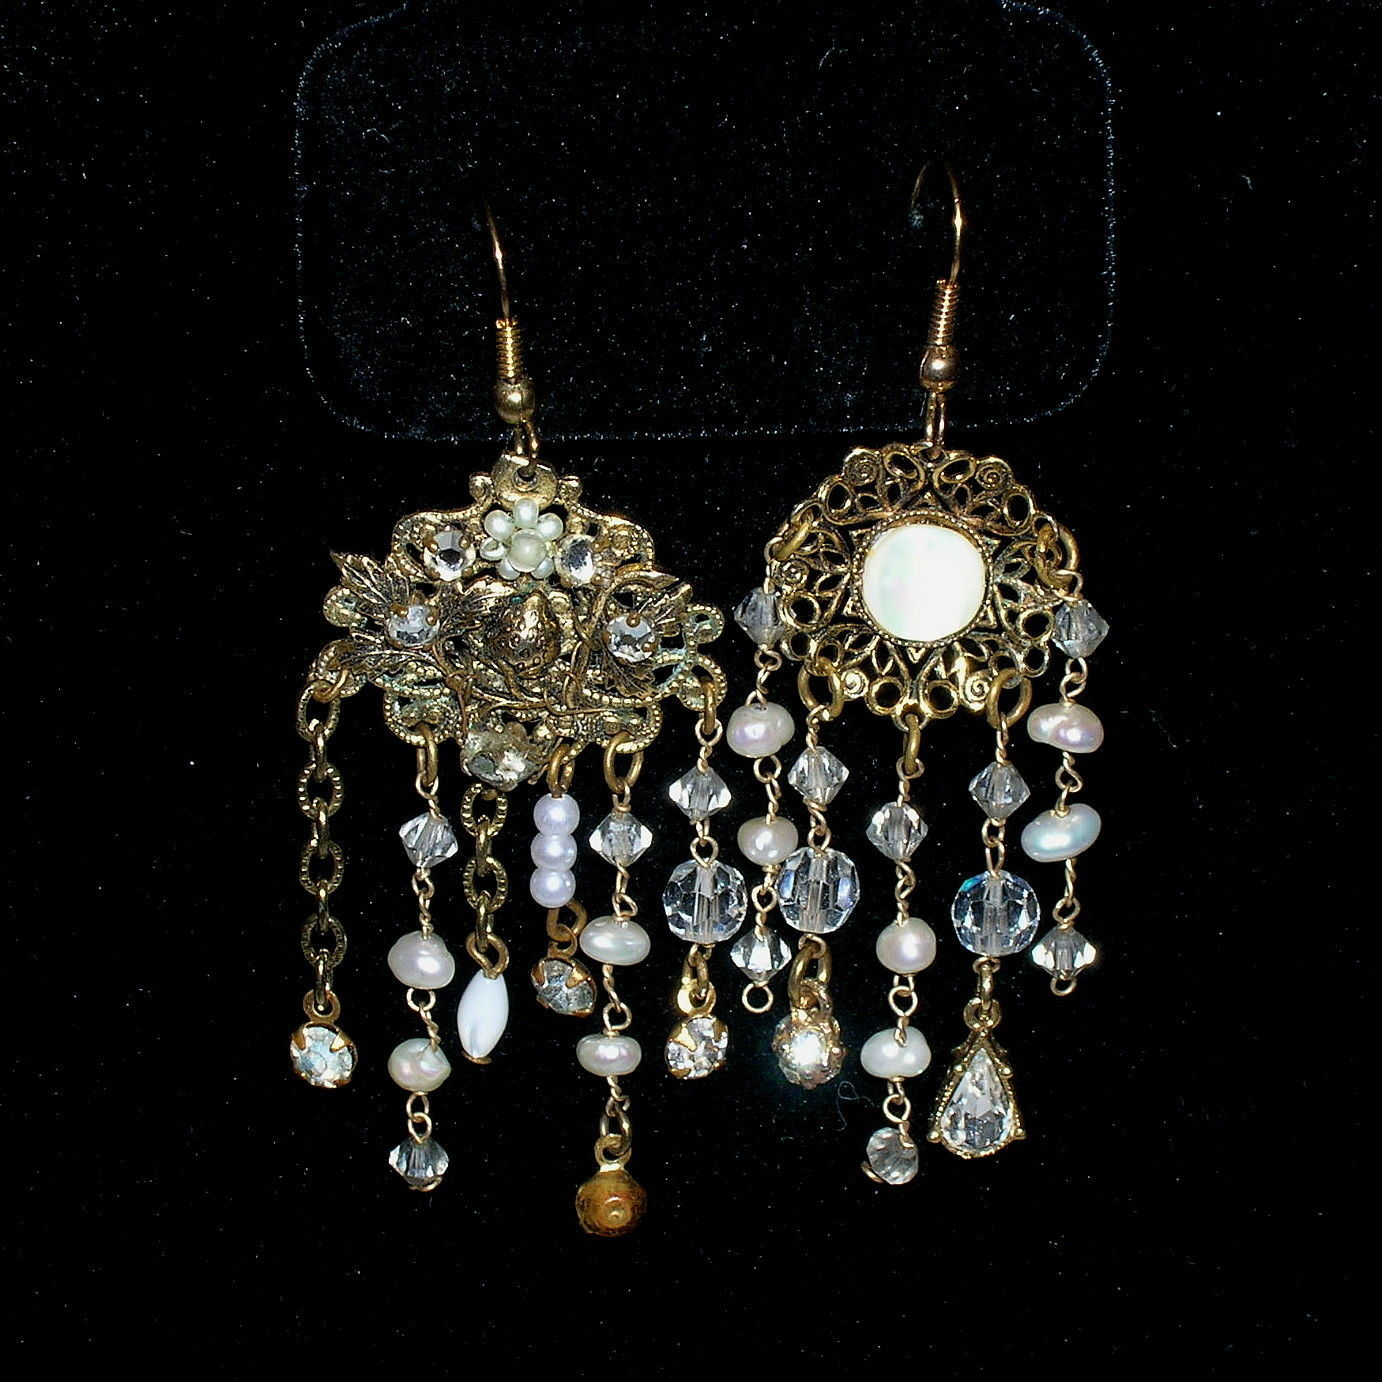 Vintage Asymmetrical Freshwater Pearl Filigree Festoon Necklace Earrings Set